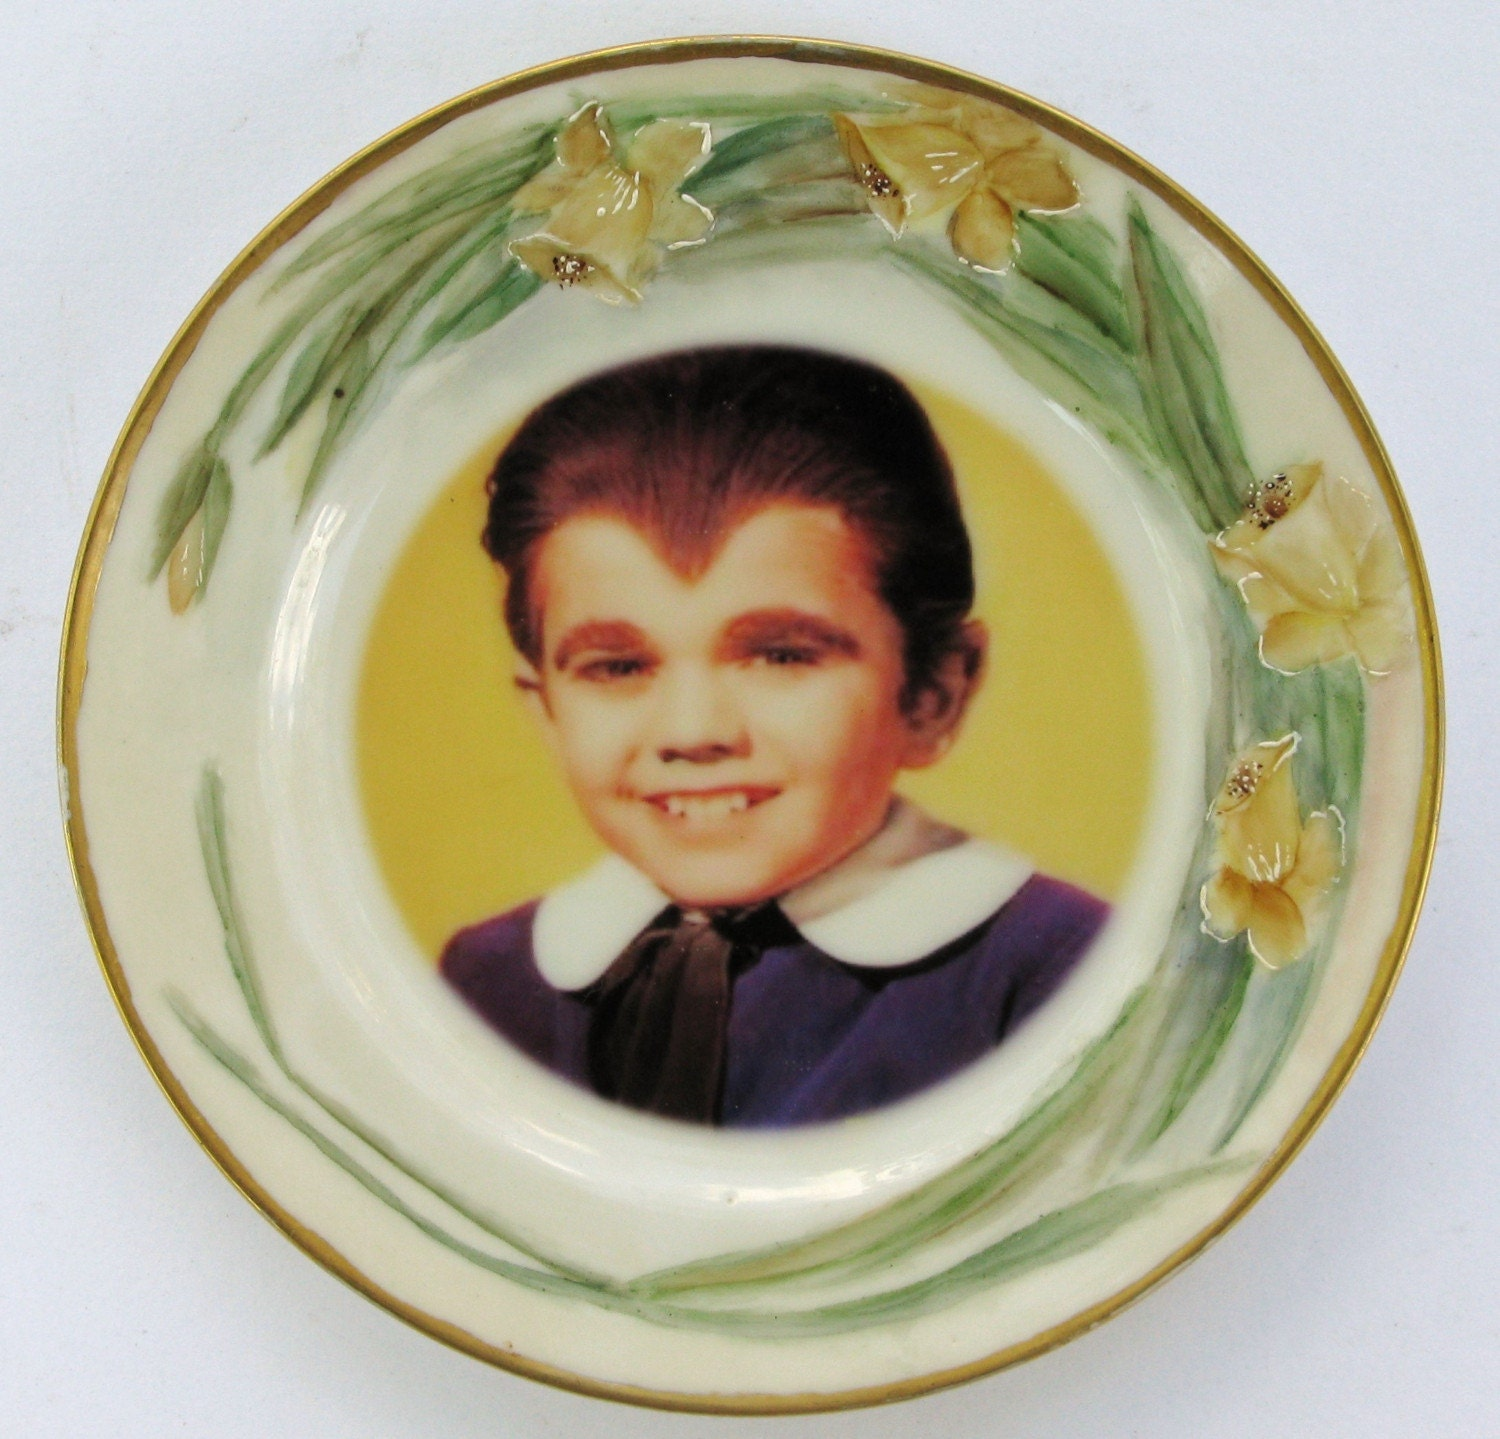 Edward Wolfgang Munster Portrait Plate - Altered Antique Plate